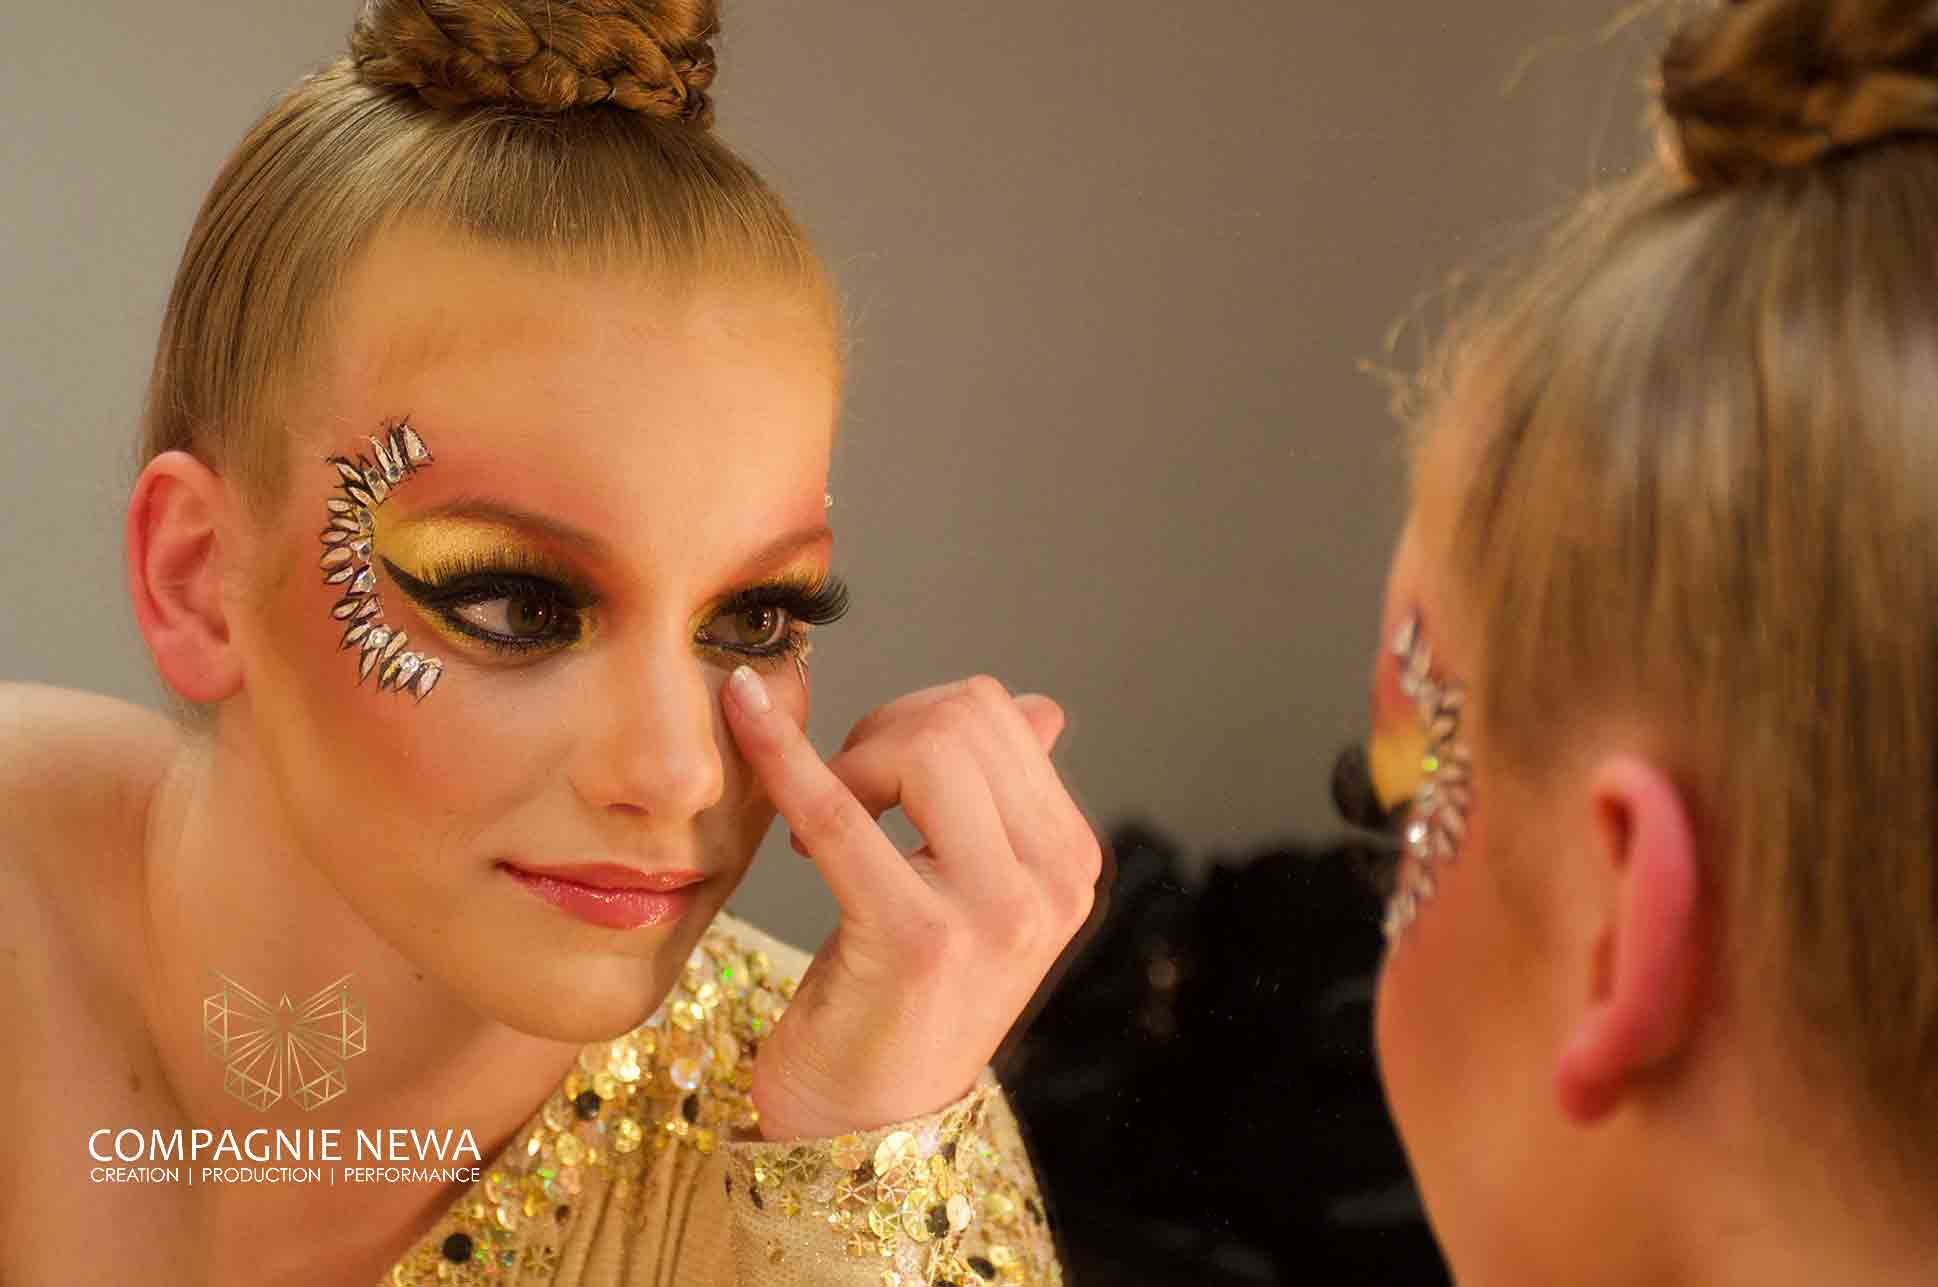 Compagnie_NEWA_mccain_makeup_acro_hand_to_hand_corporate_event